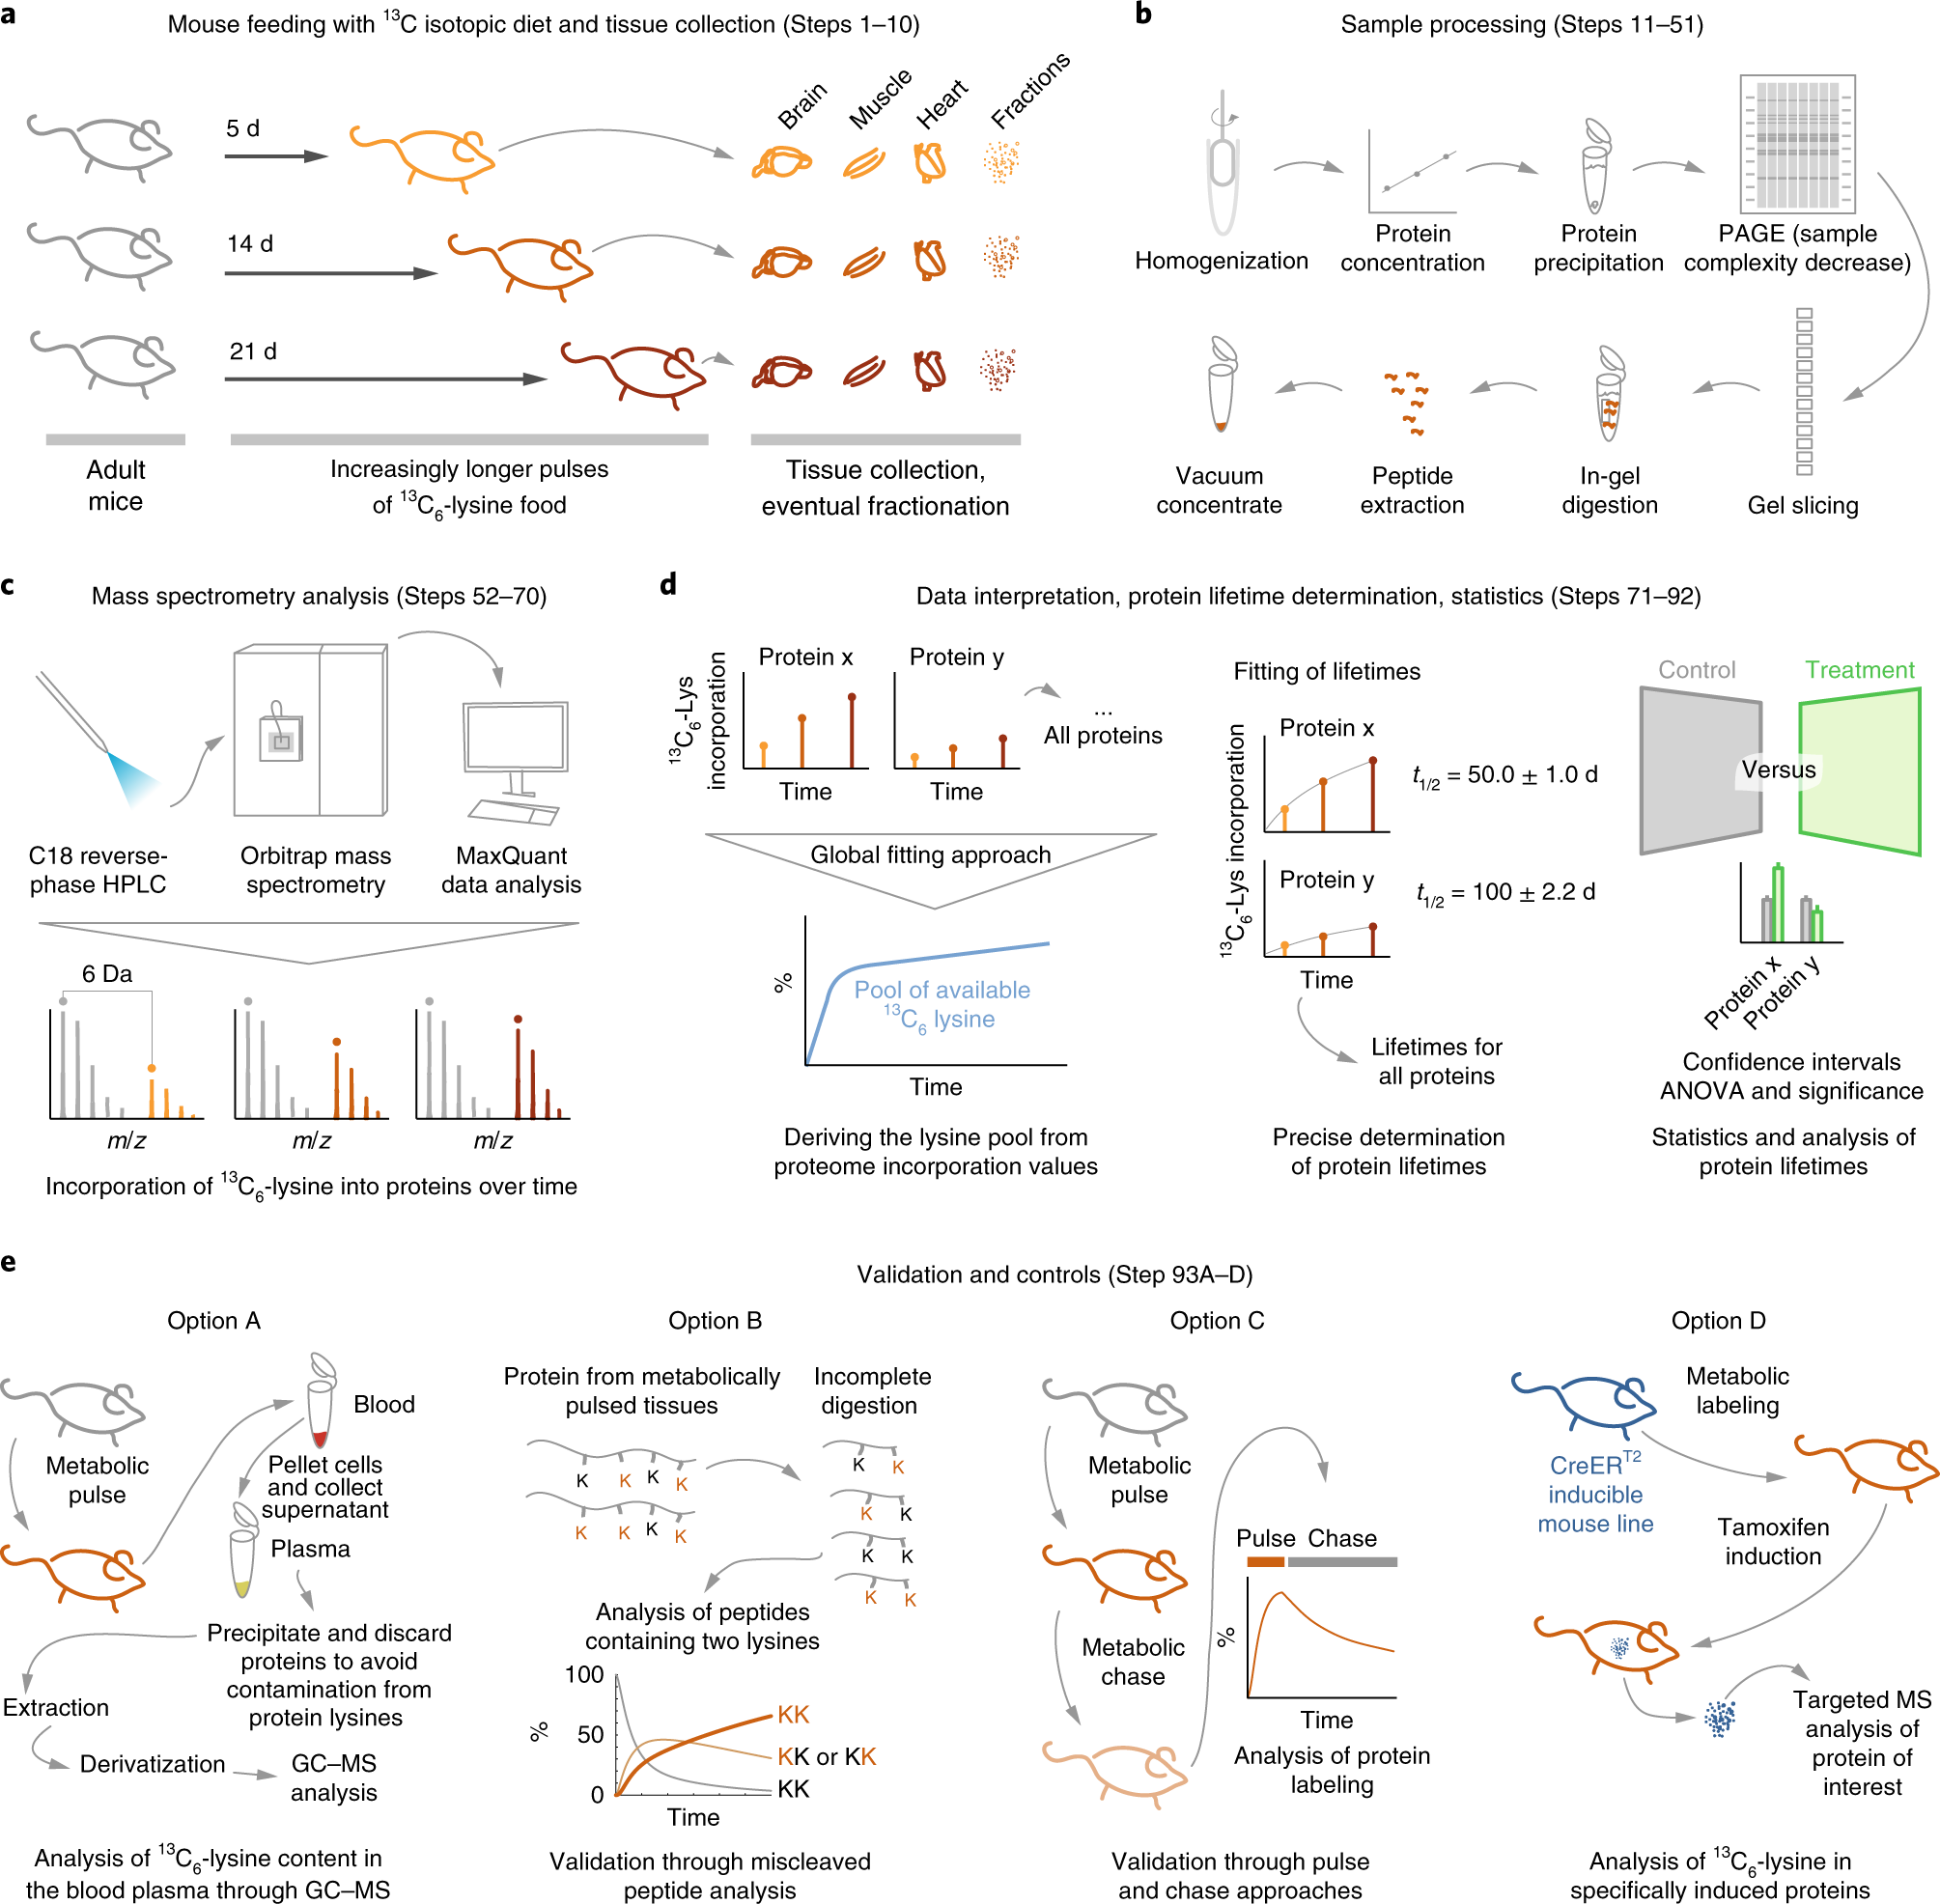 A mass spectrometry workflow for measuring protein turnover rates in v